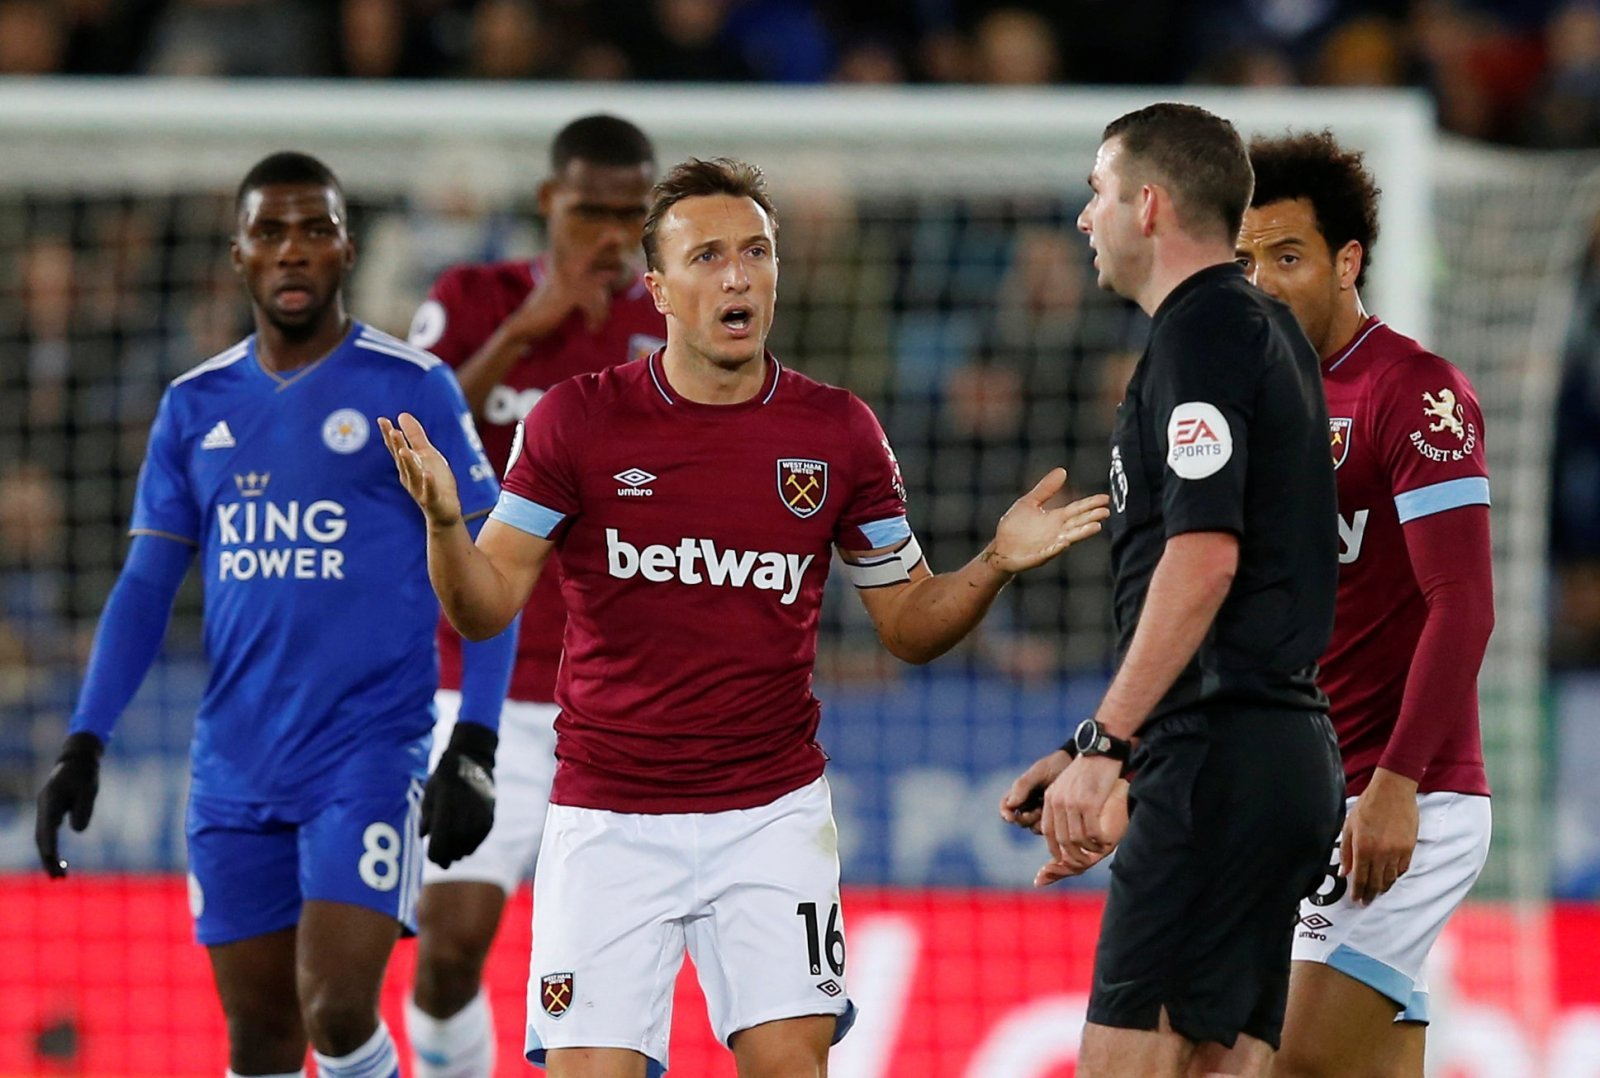 West Ham team news: Mark Noble continues to serve his suspension